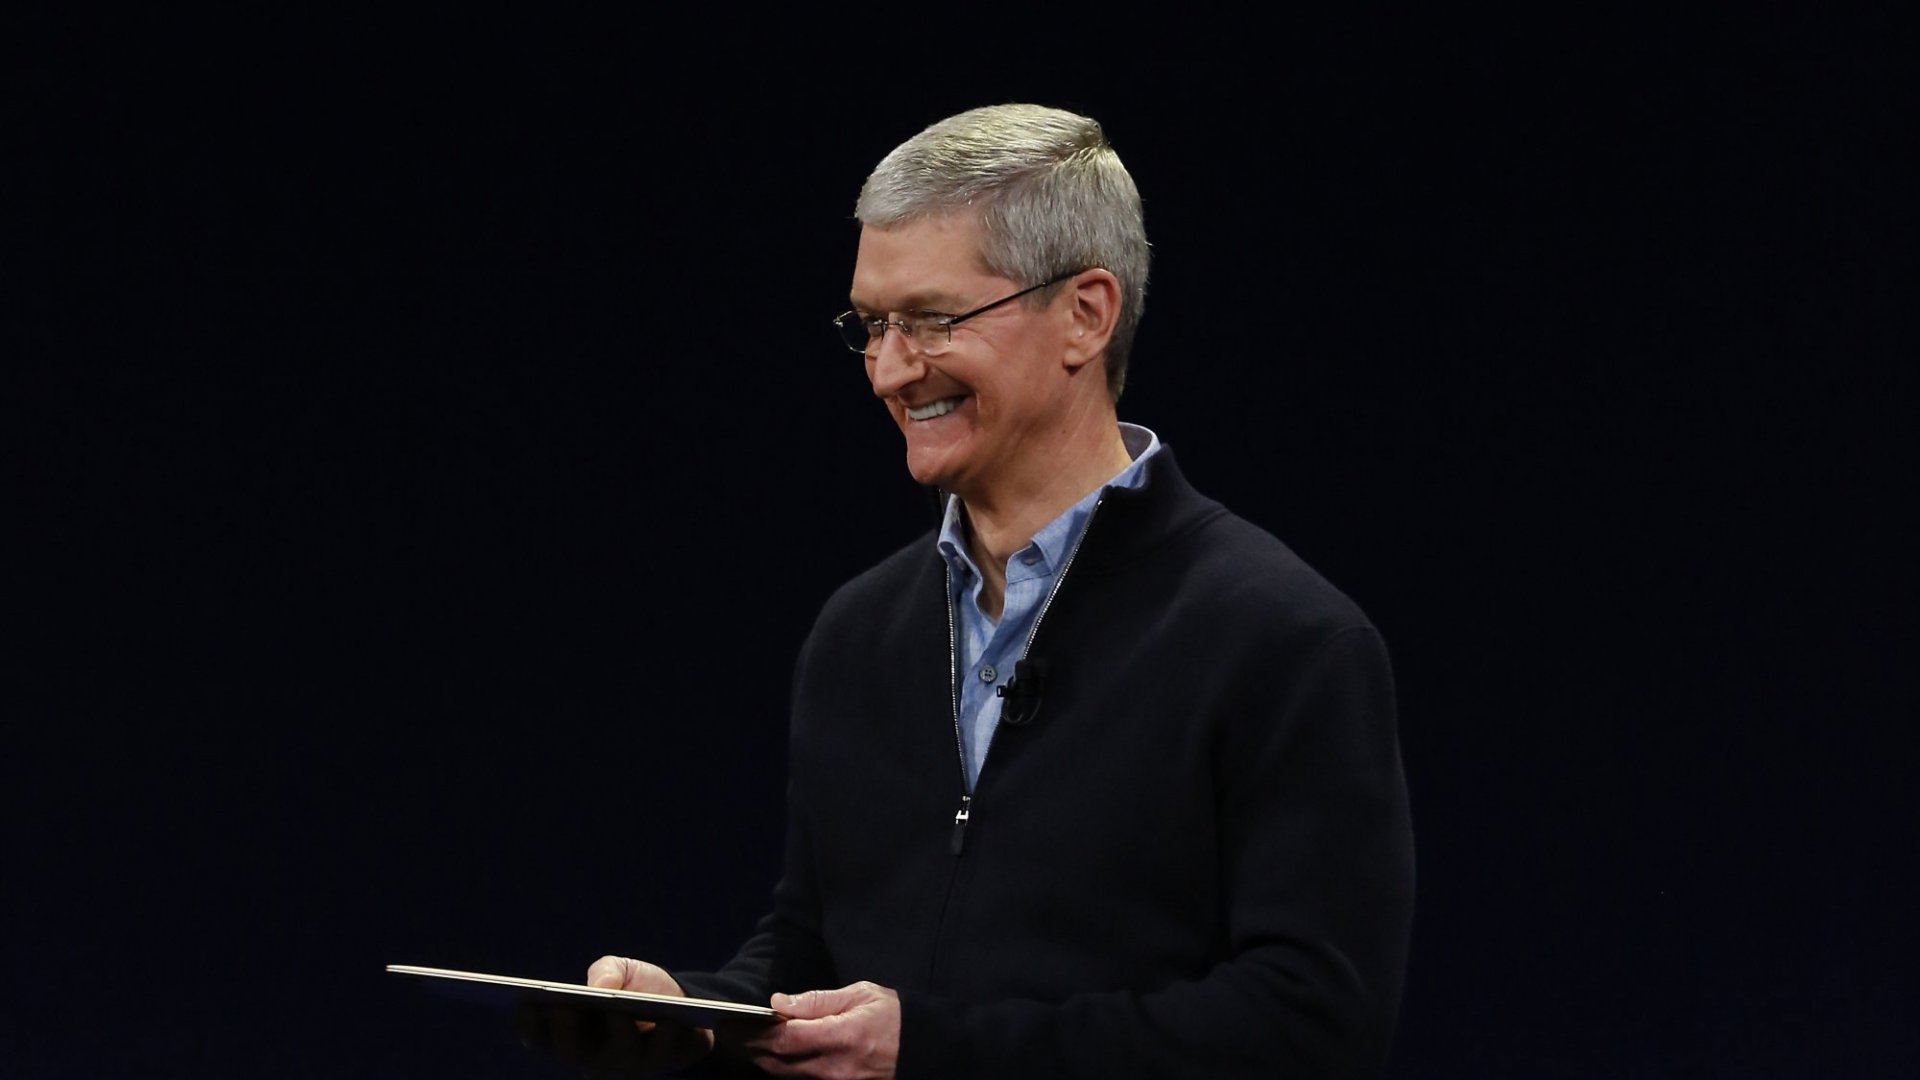 Apple CEO Tim Cook Talked Steve Jobs and Making a Difference in His Eye-Opening Stanford Commencement Speech